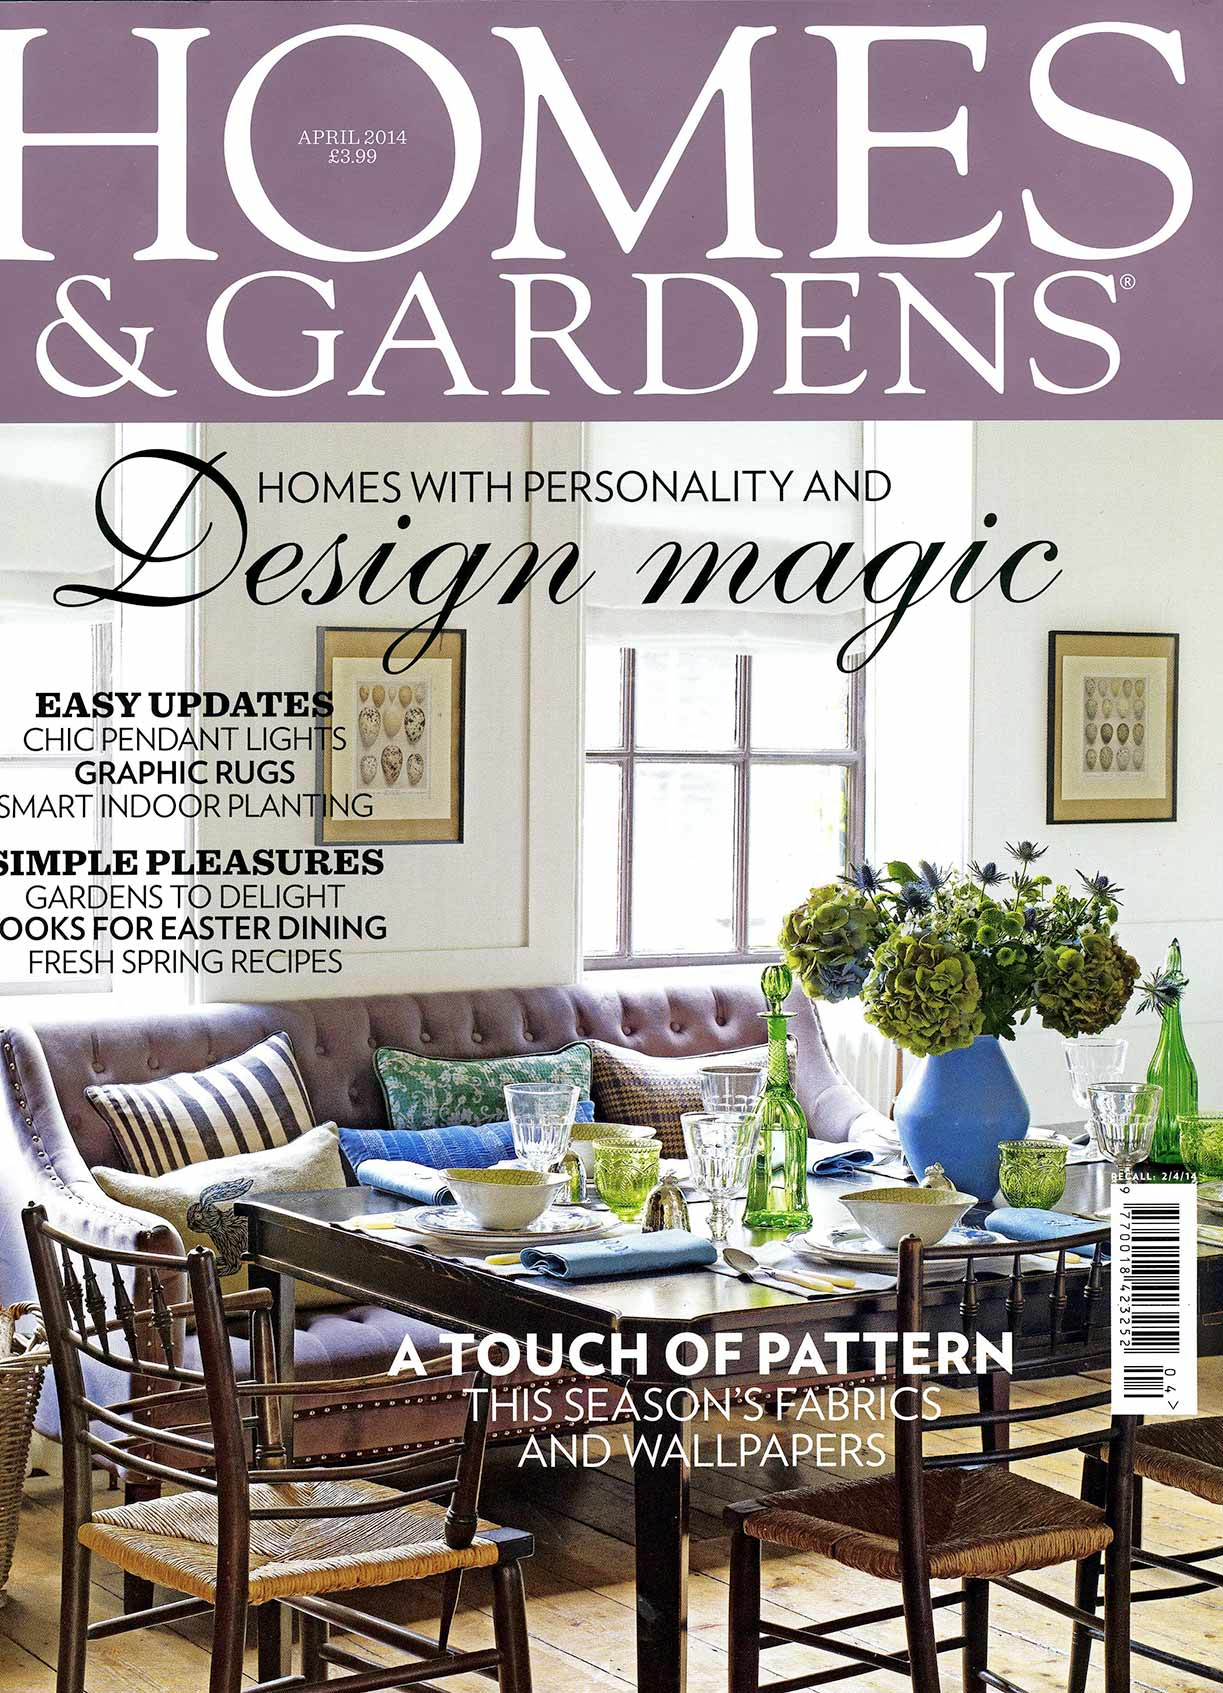 homes&gardens-April-cover